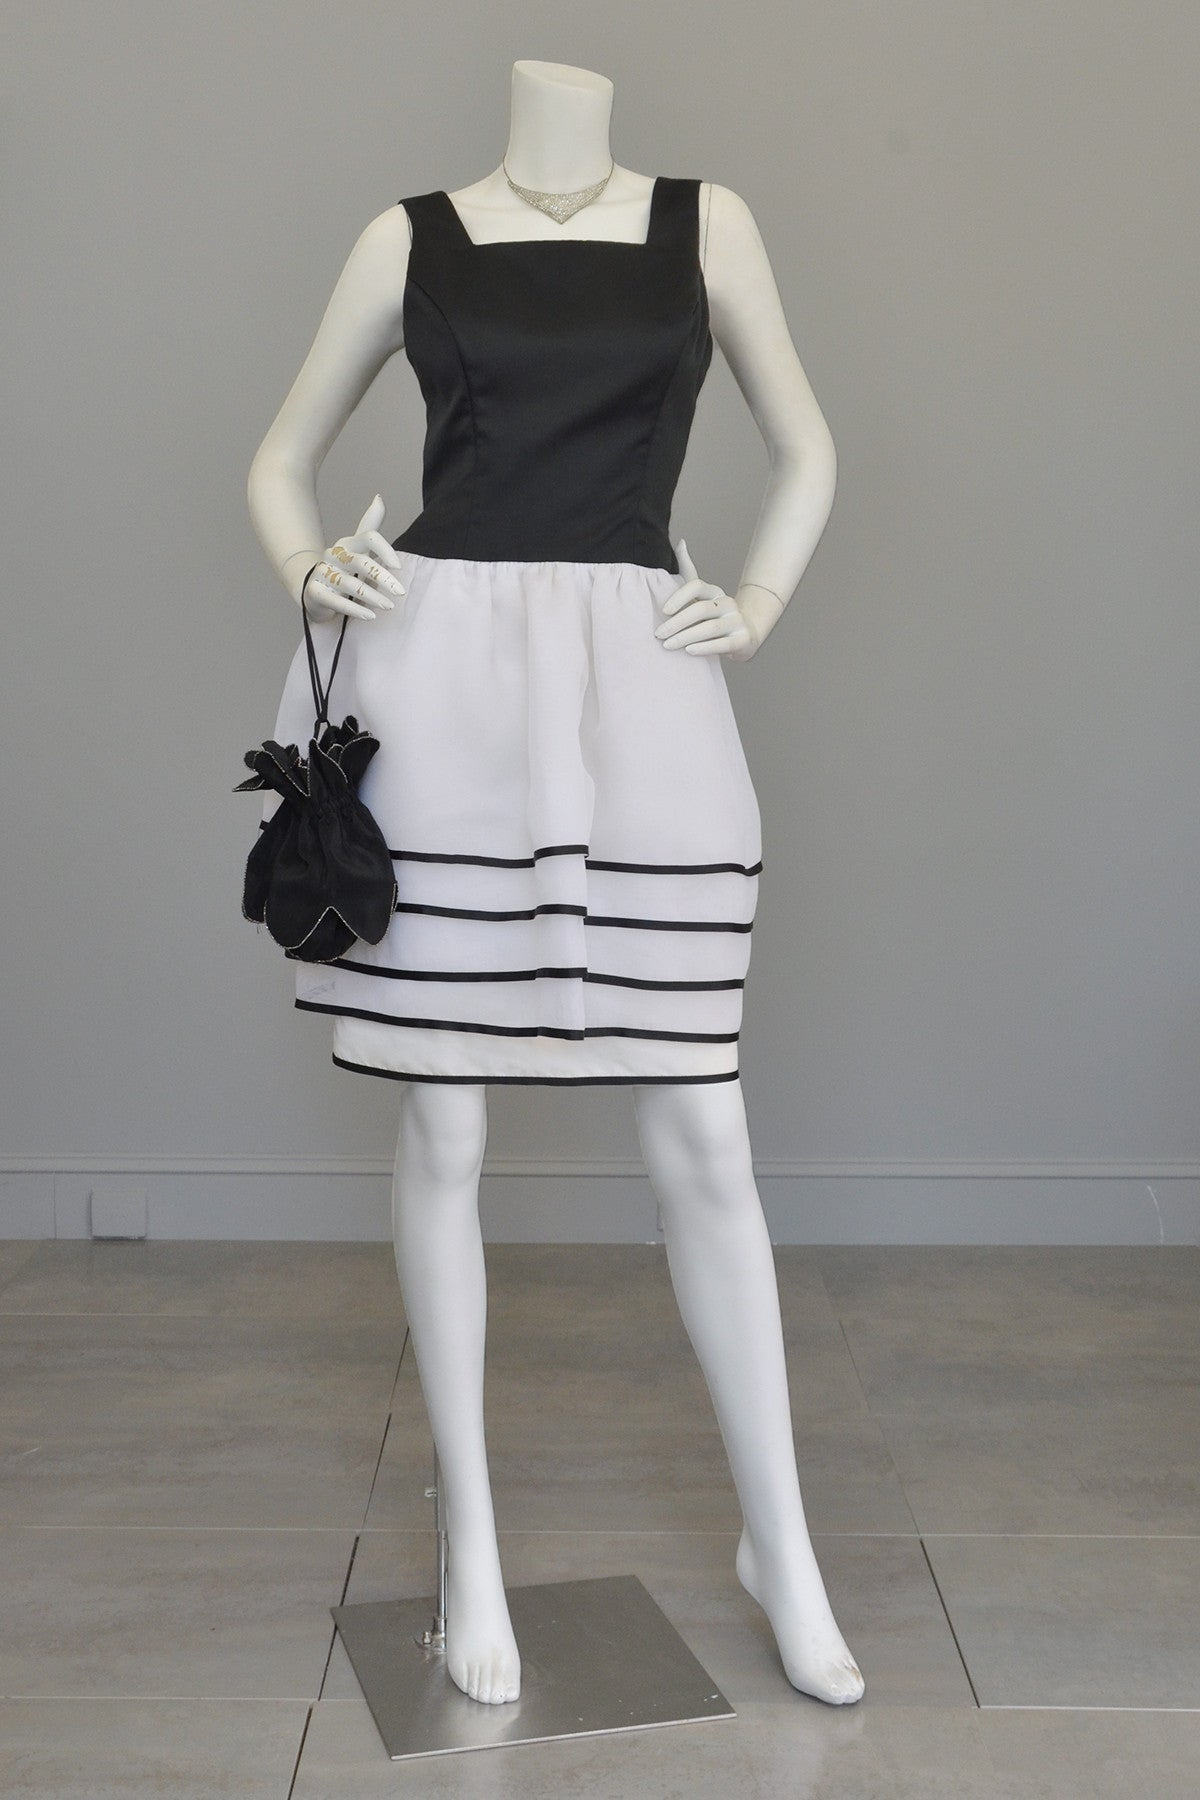 1980s Victor Costa Black White Peplum Skirt Cocktail Party Dress